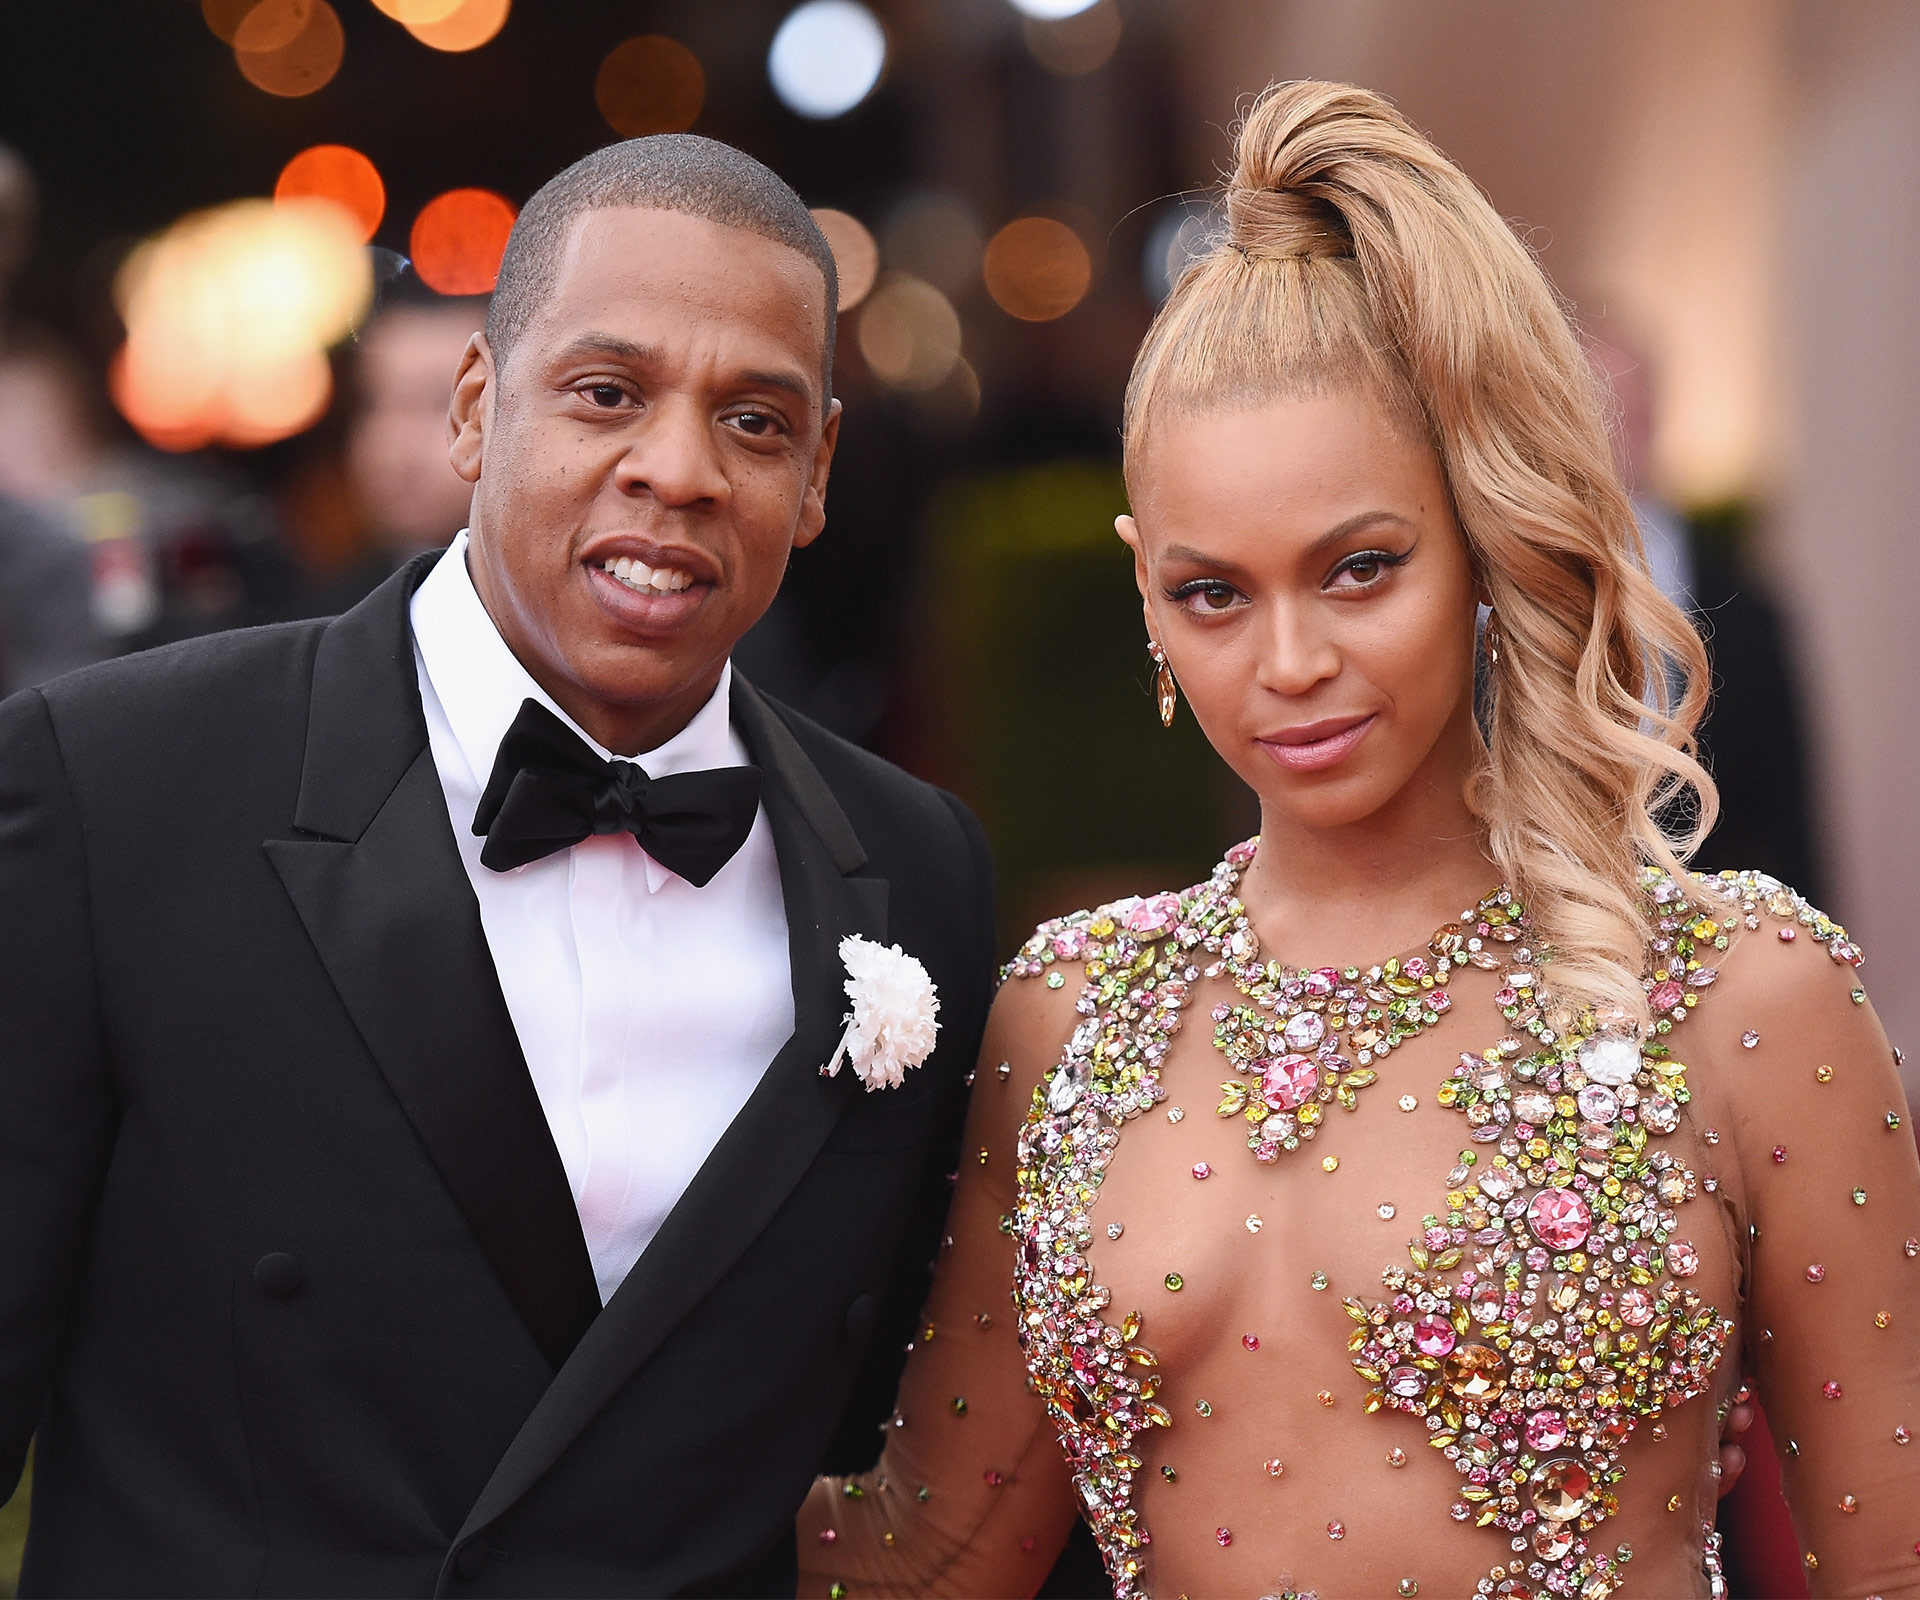 Beyoncé reveals her newborn twins to the world in flamboyant picture